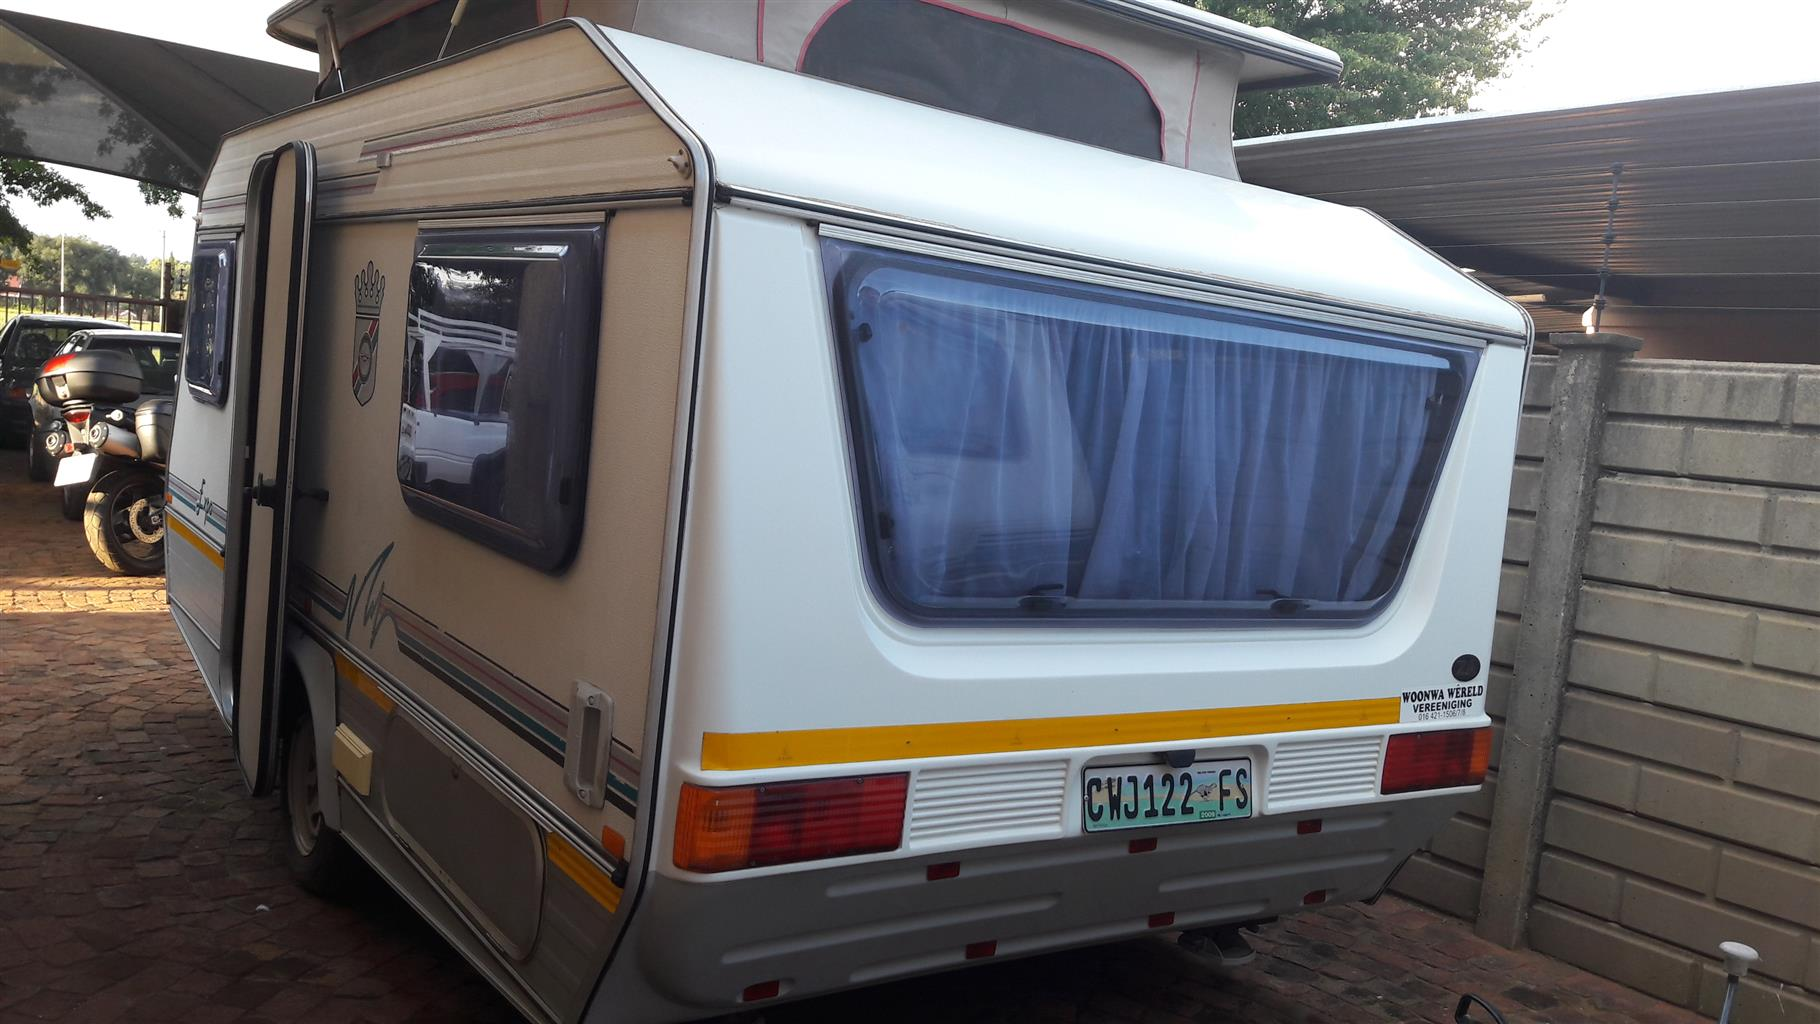 jurgens expo 1996 model in vereeniging tel nr 0835818449 with full tent in excellent condition must be seen